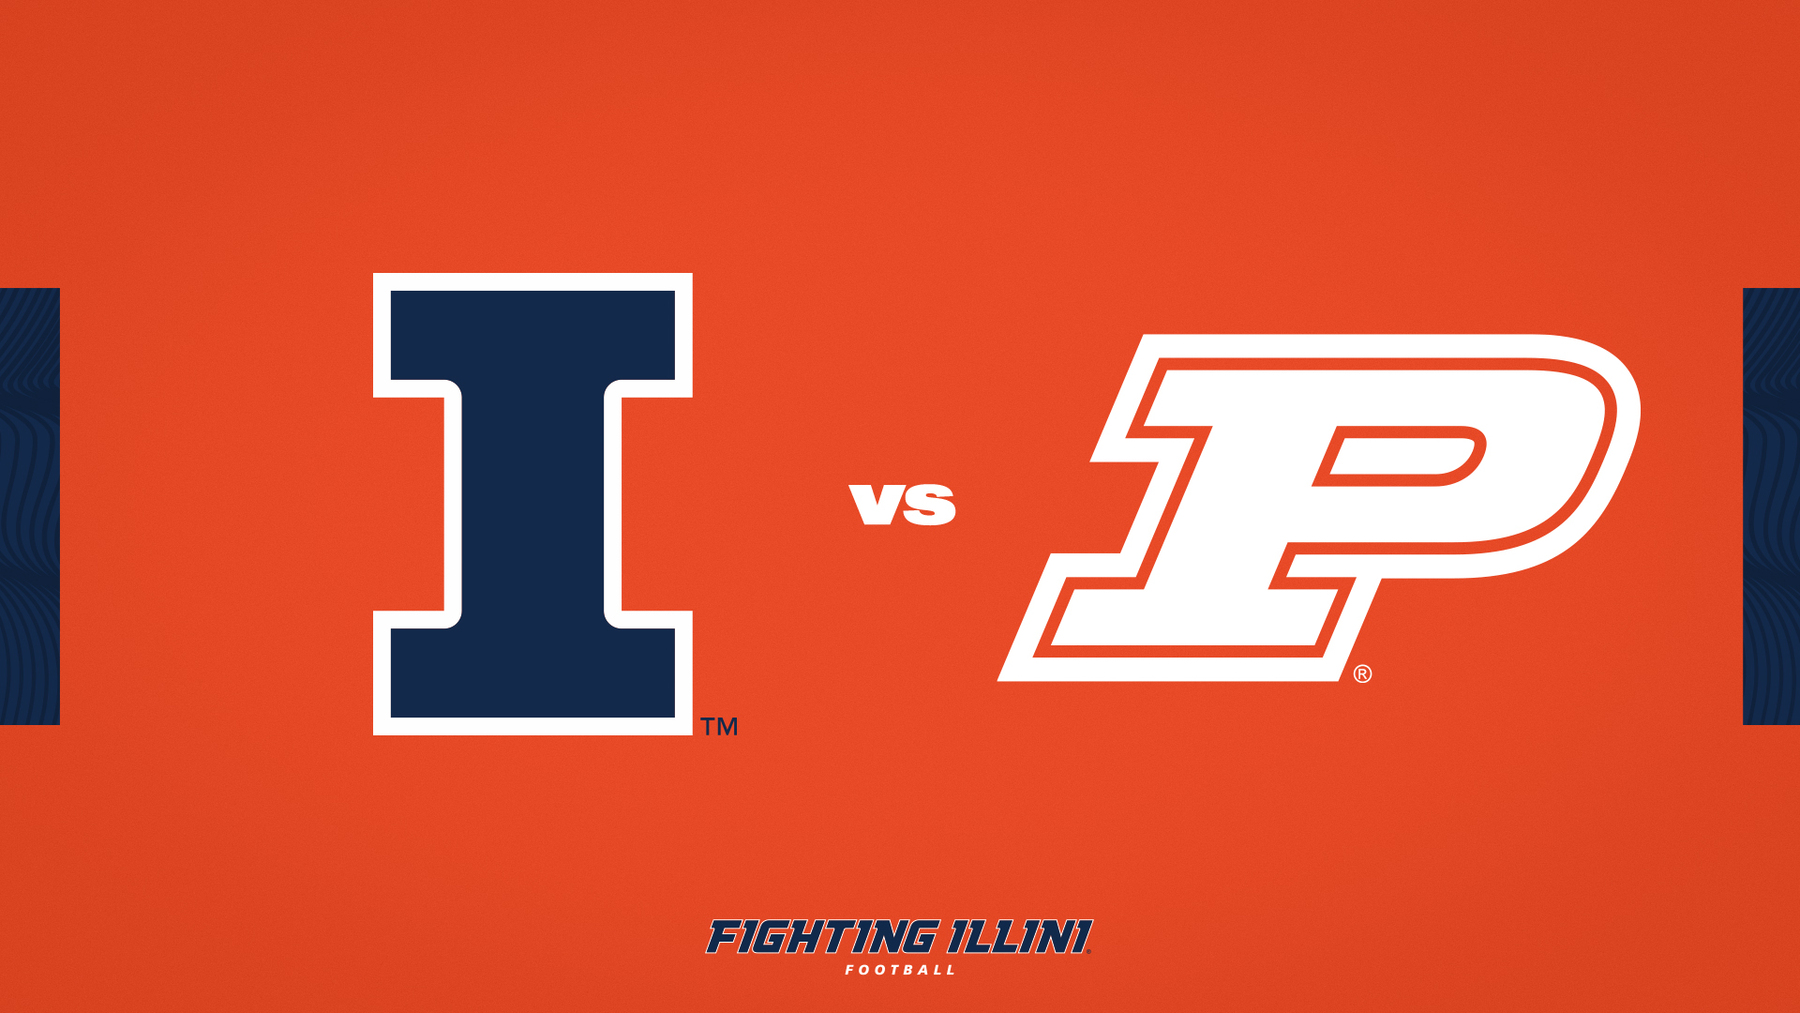 orange and blue graphic - Illinois vs. Purdue